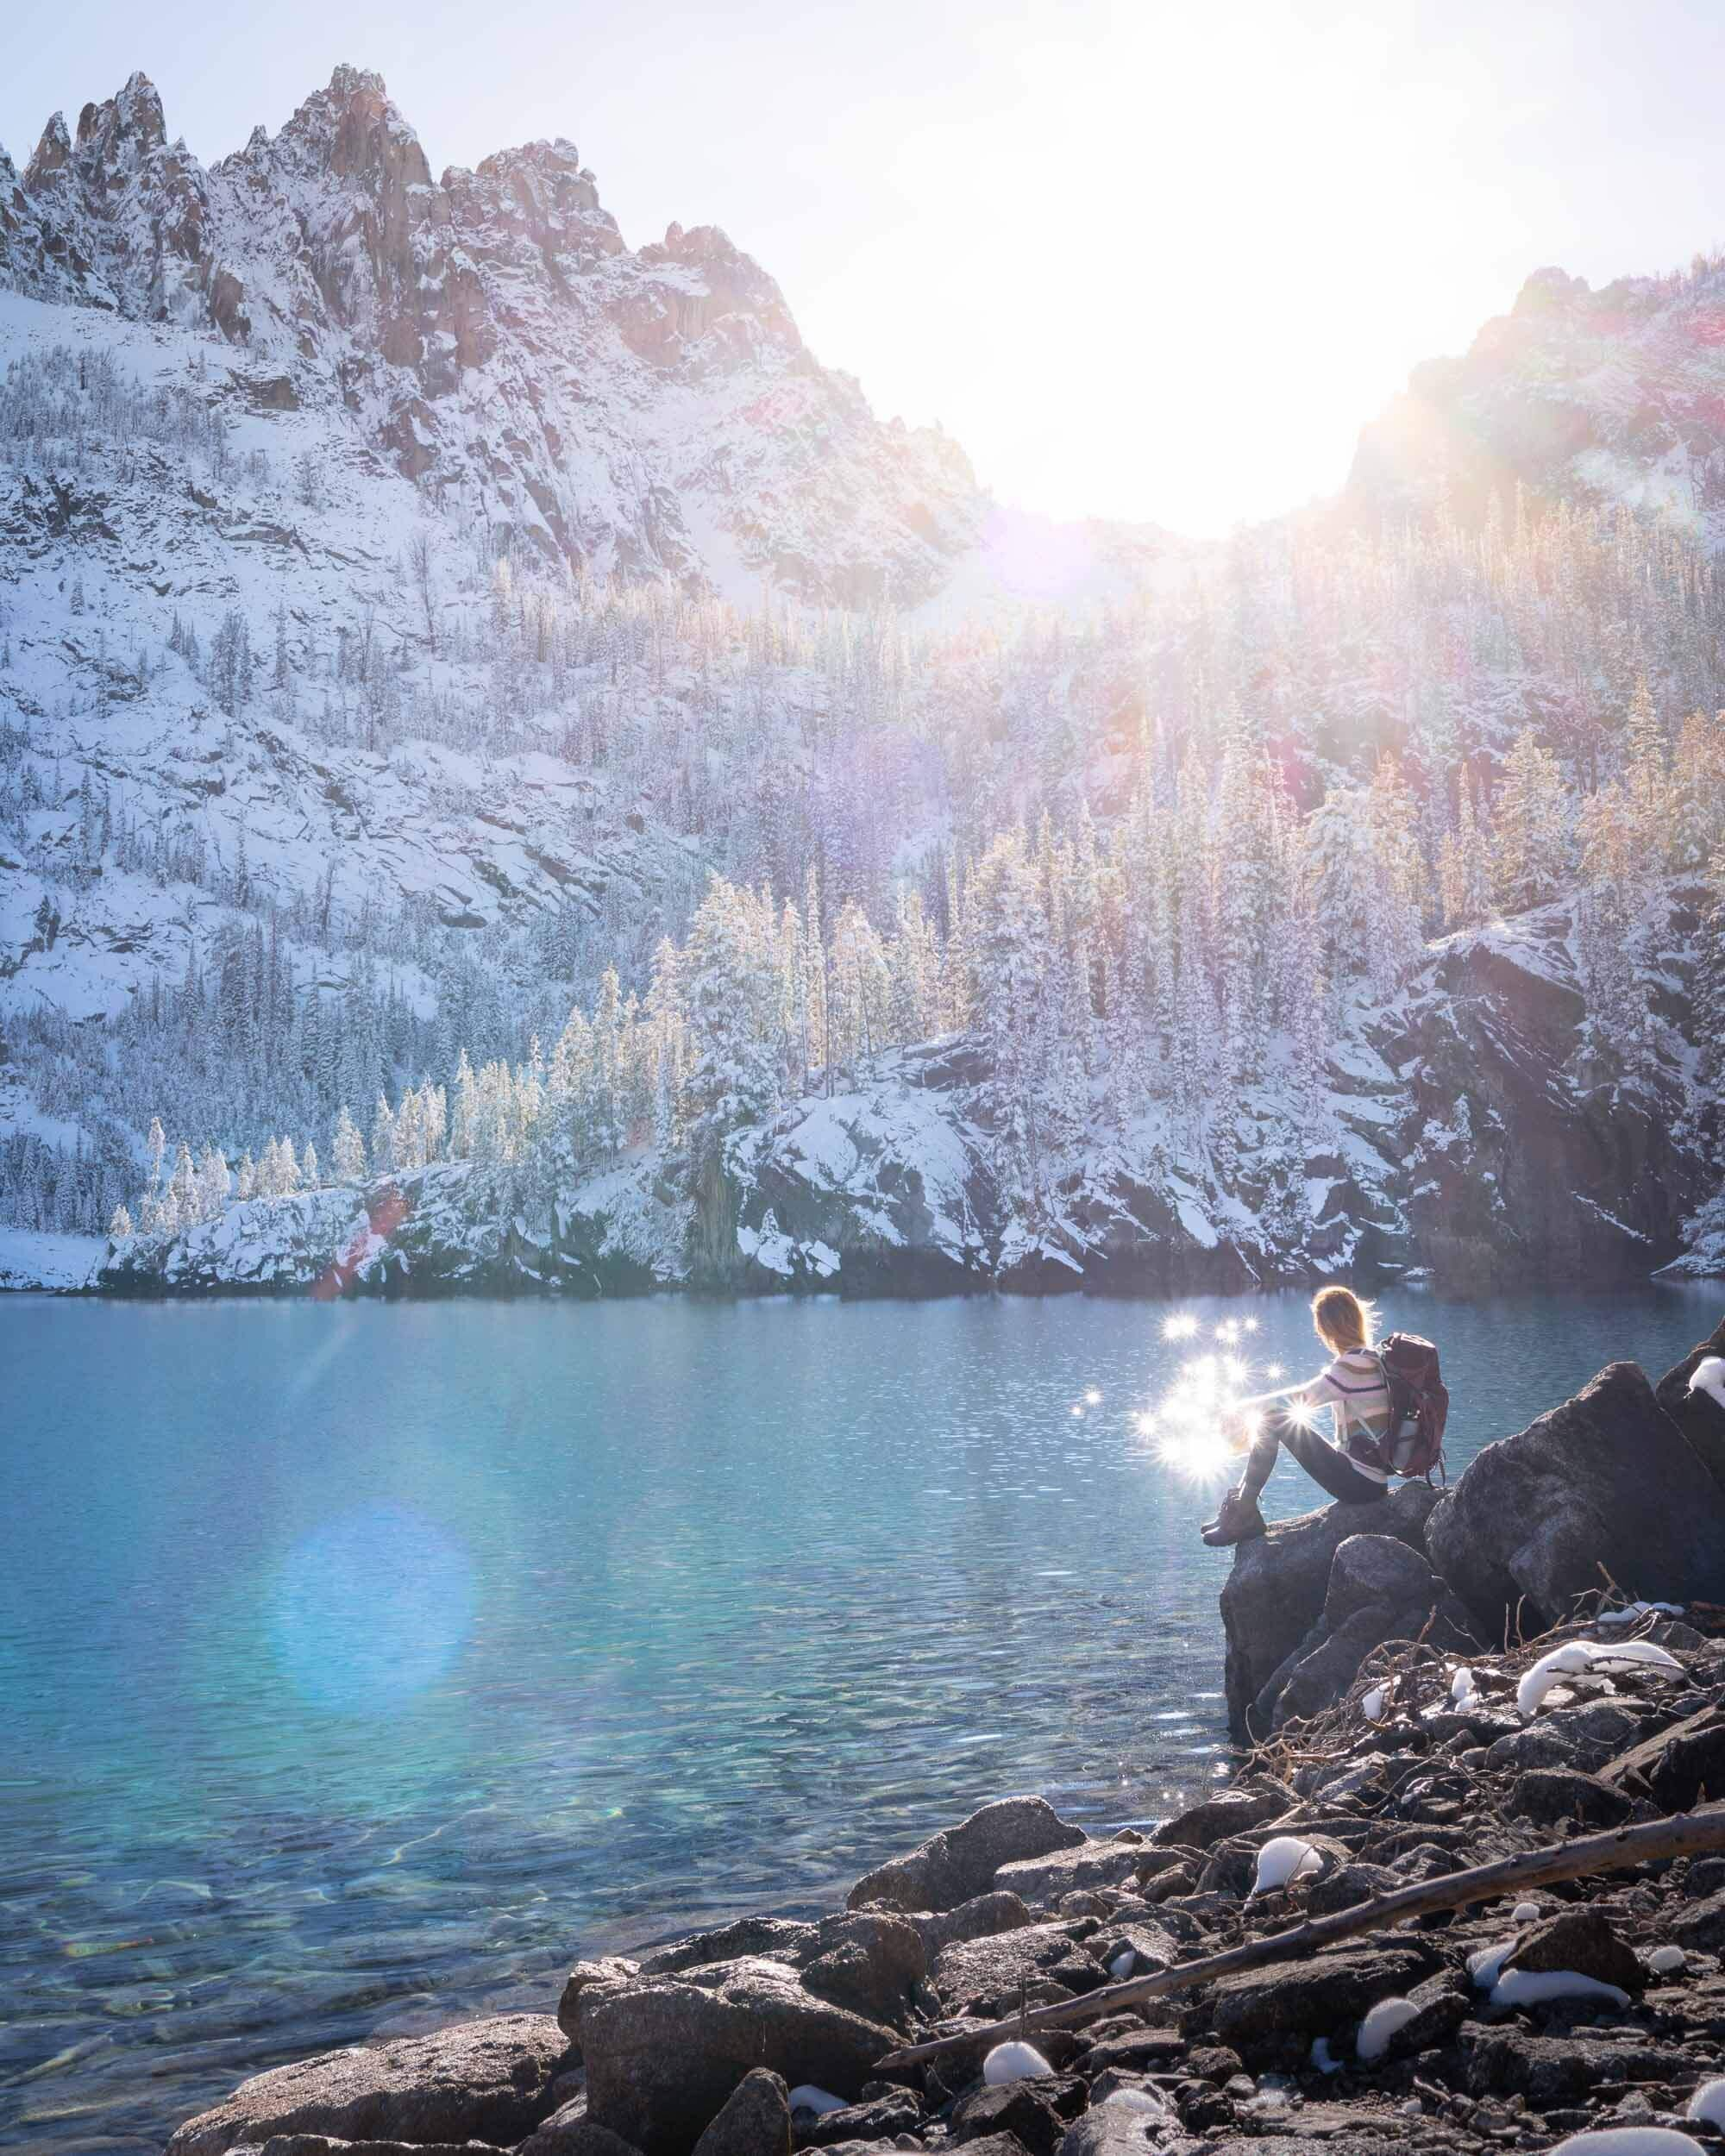 The Bench Lakes are a chain of five small alpine glacial lakes in the Sawtooth Mountains. The trail is beautiful and starts near the Redfish Lake Lodge.